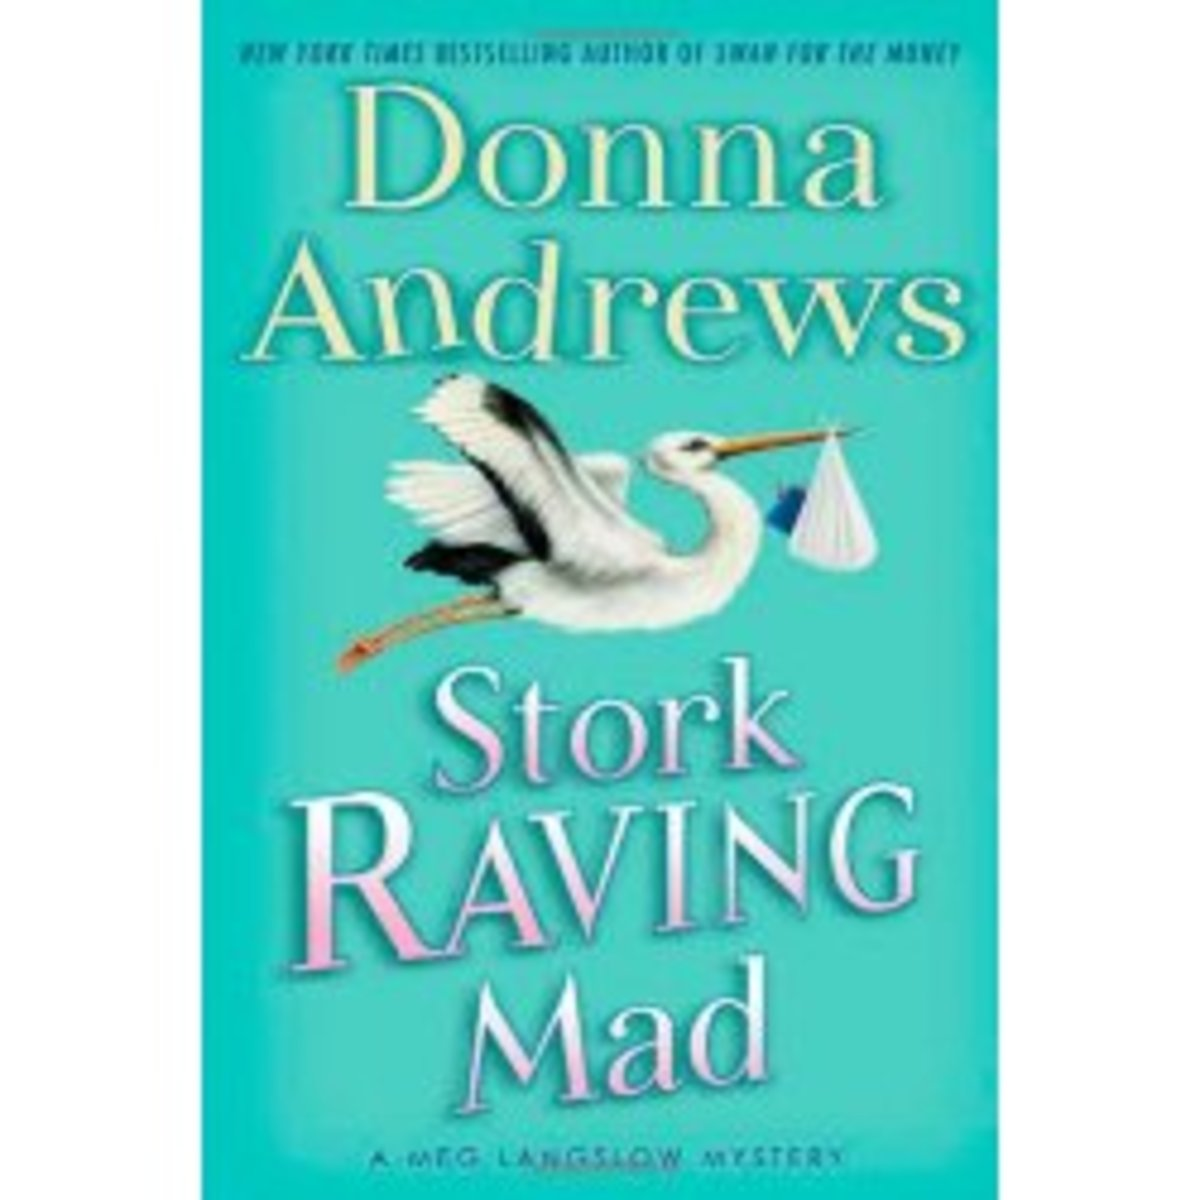 Stork Raving Mad by Donna Andrews Book 12 in the Meg Langslow Series